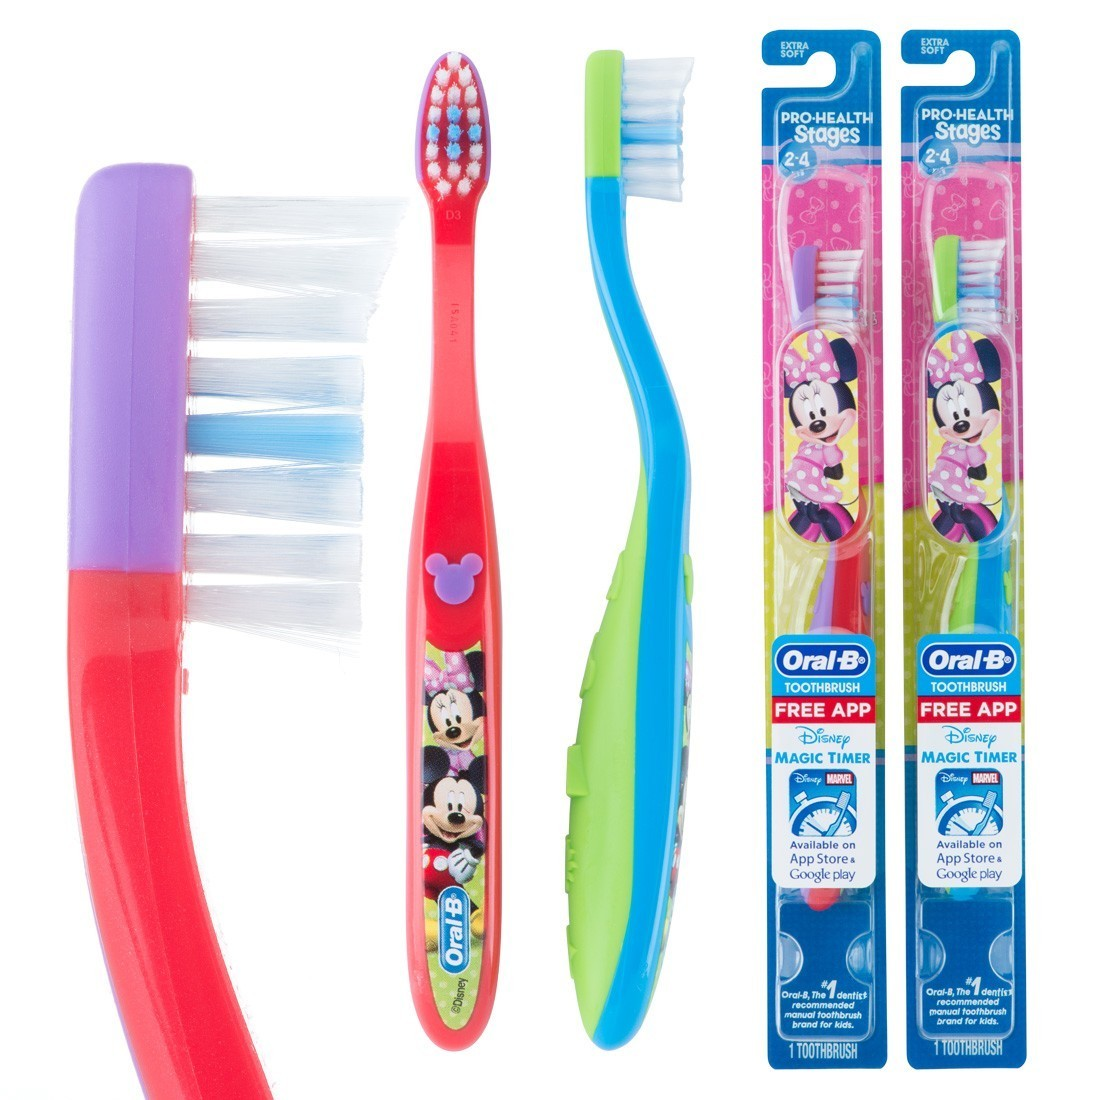 Oral-B Pro-Health Stages 2 Mickey Mouse Toothbrushes [image]